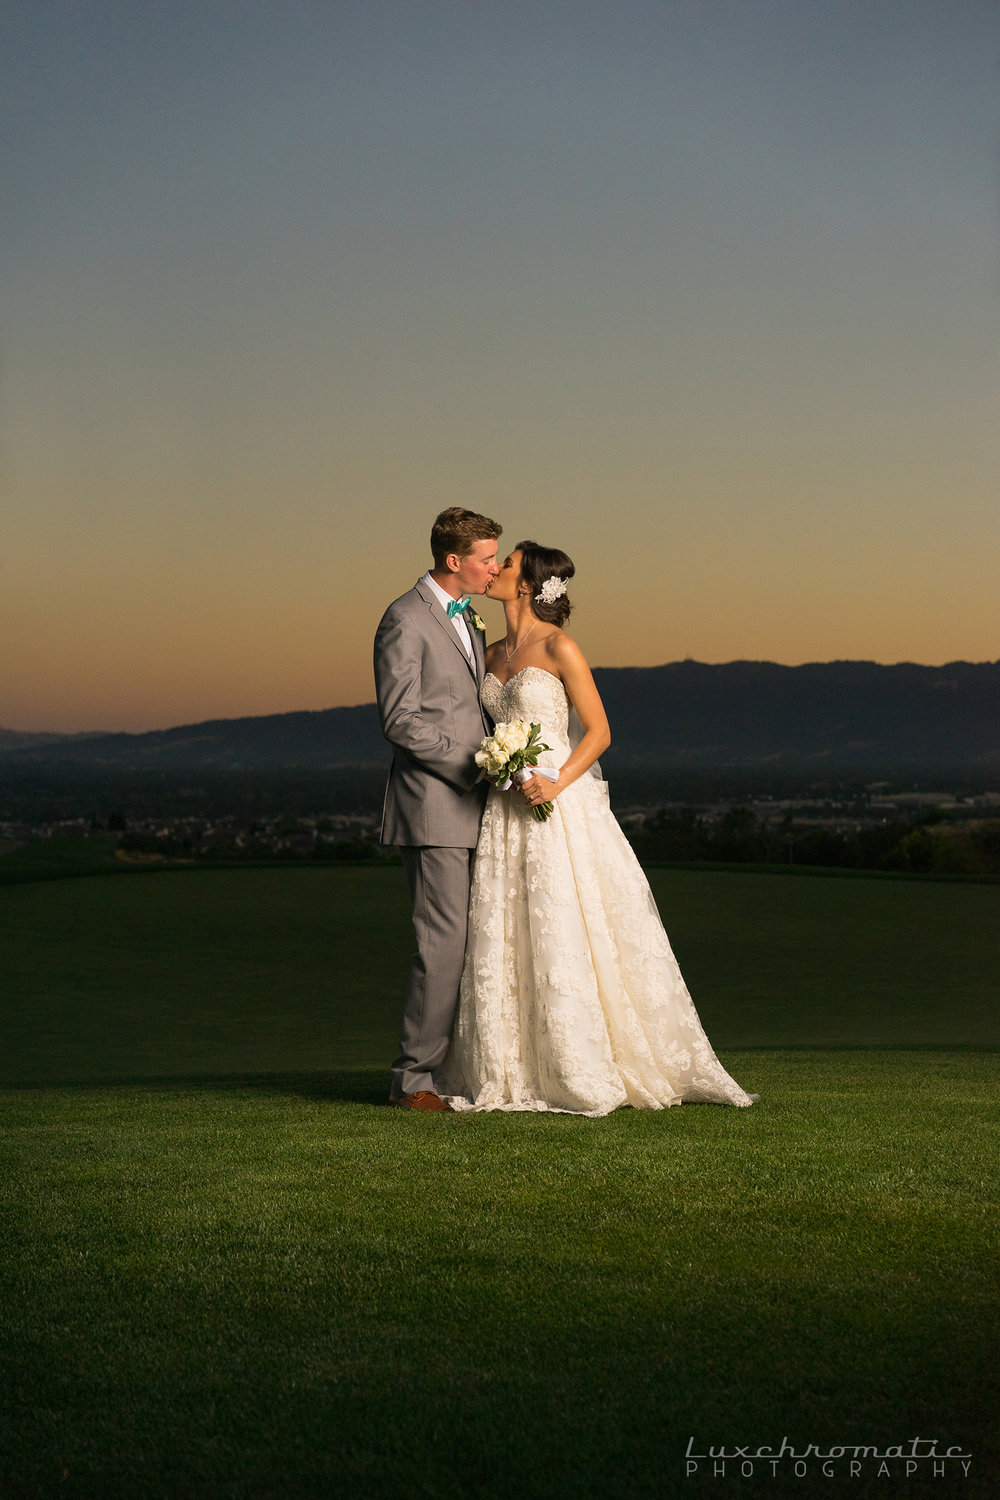 061717_Jessica_Chris-3034-luxchromatic-wedding-bride-groom-brides-sonyalpha-sonyimages-sony-sonyphotography-sanfrancisco-sf-bayarea-weddingphotography-photographer-profoto-interfit-strobe-light-speedlite-dublin-ranch-golf-course-ca-california.jpg